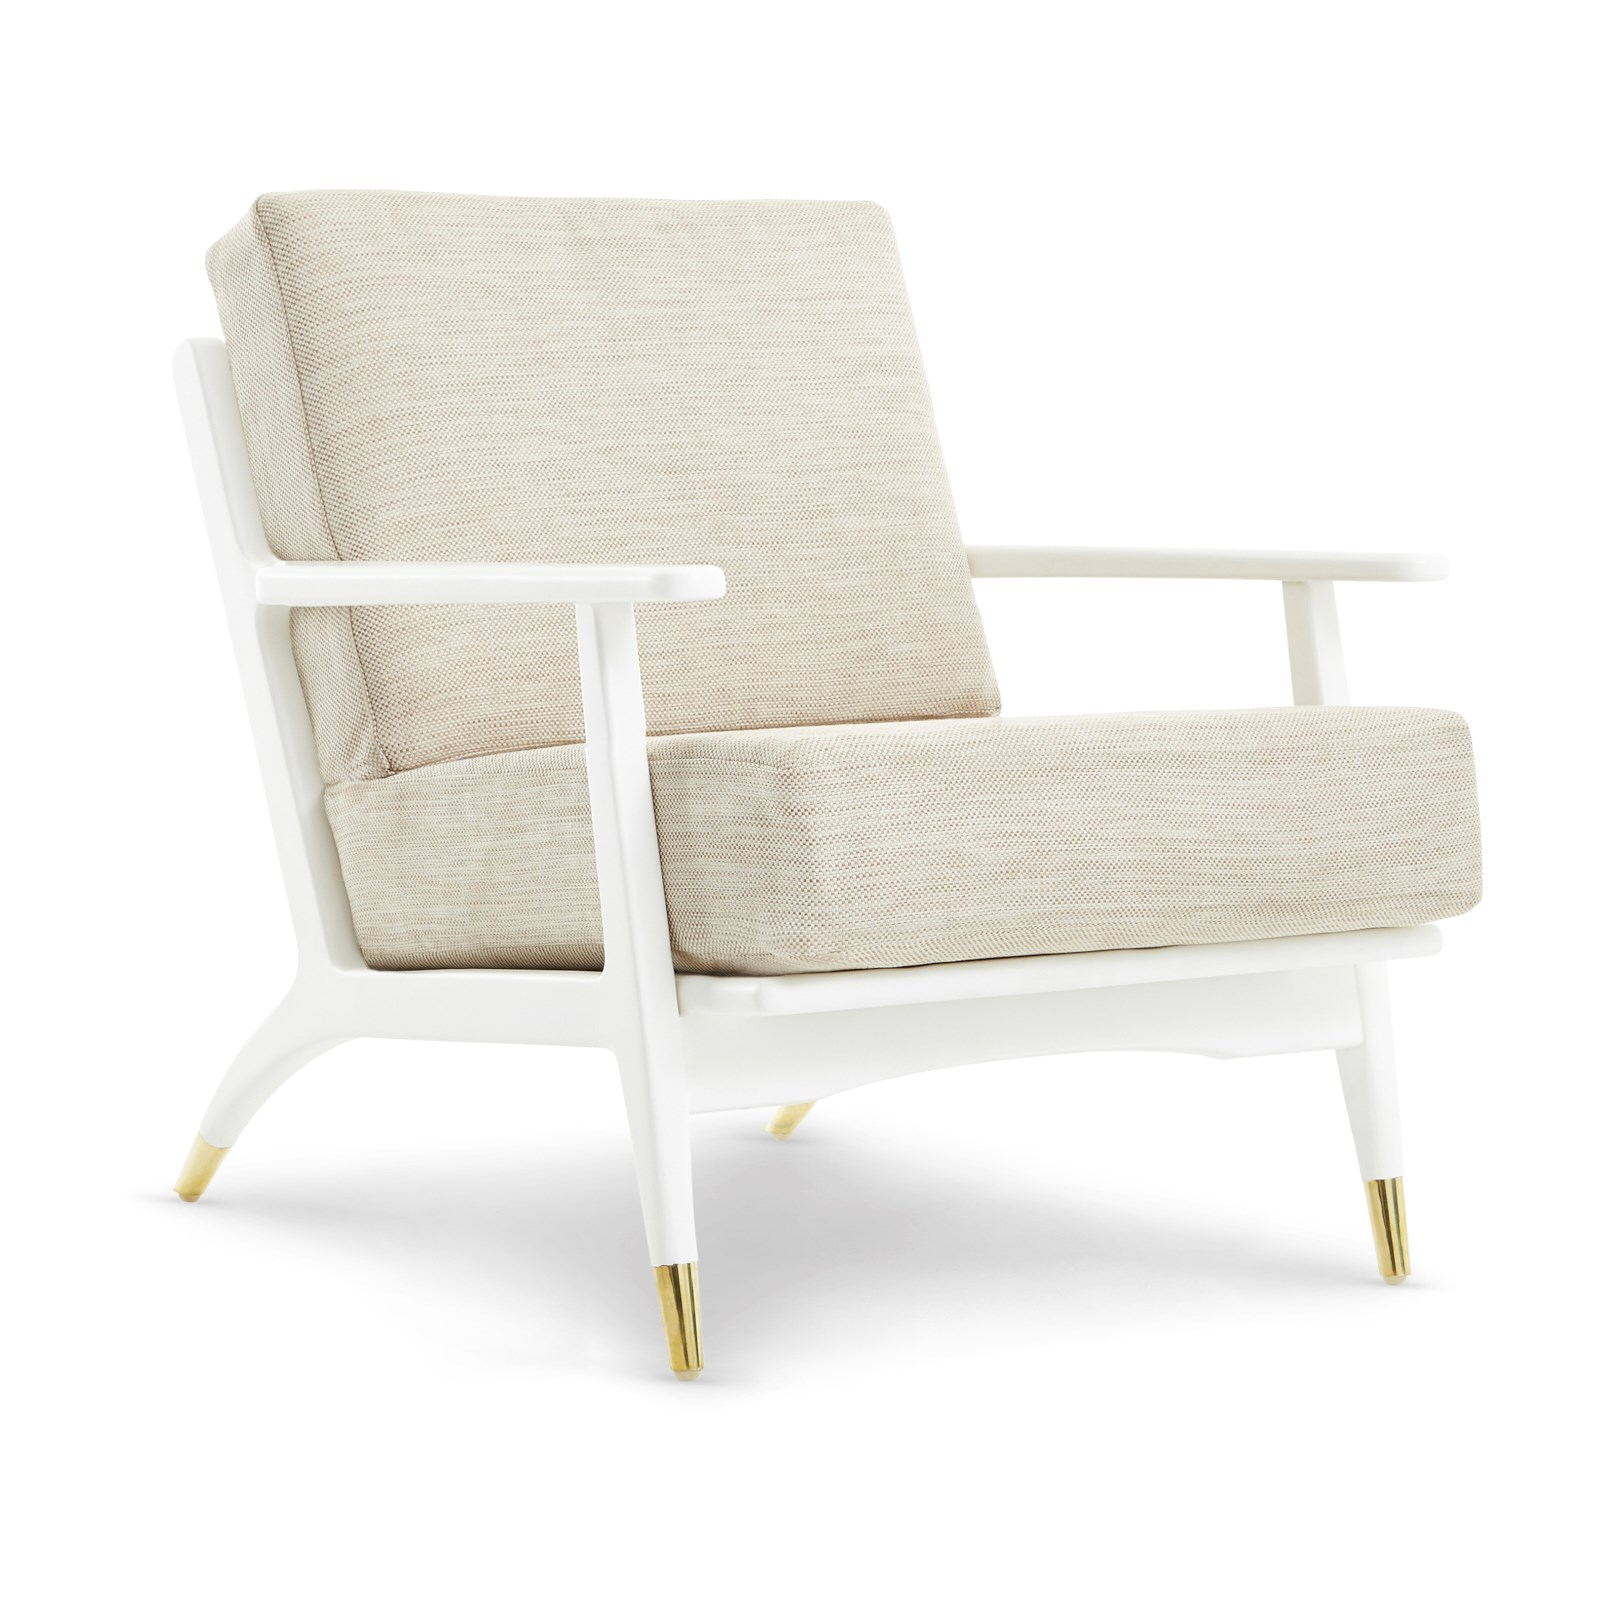 Hart Lounge Chair Covers sold separately White Bungalow 5